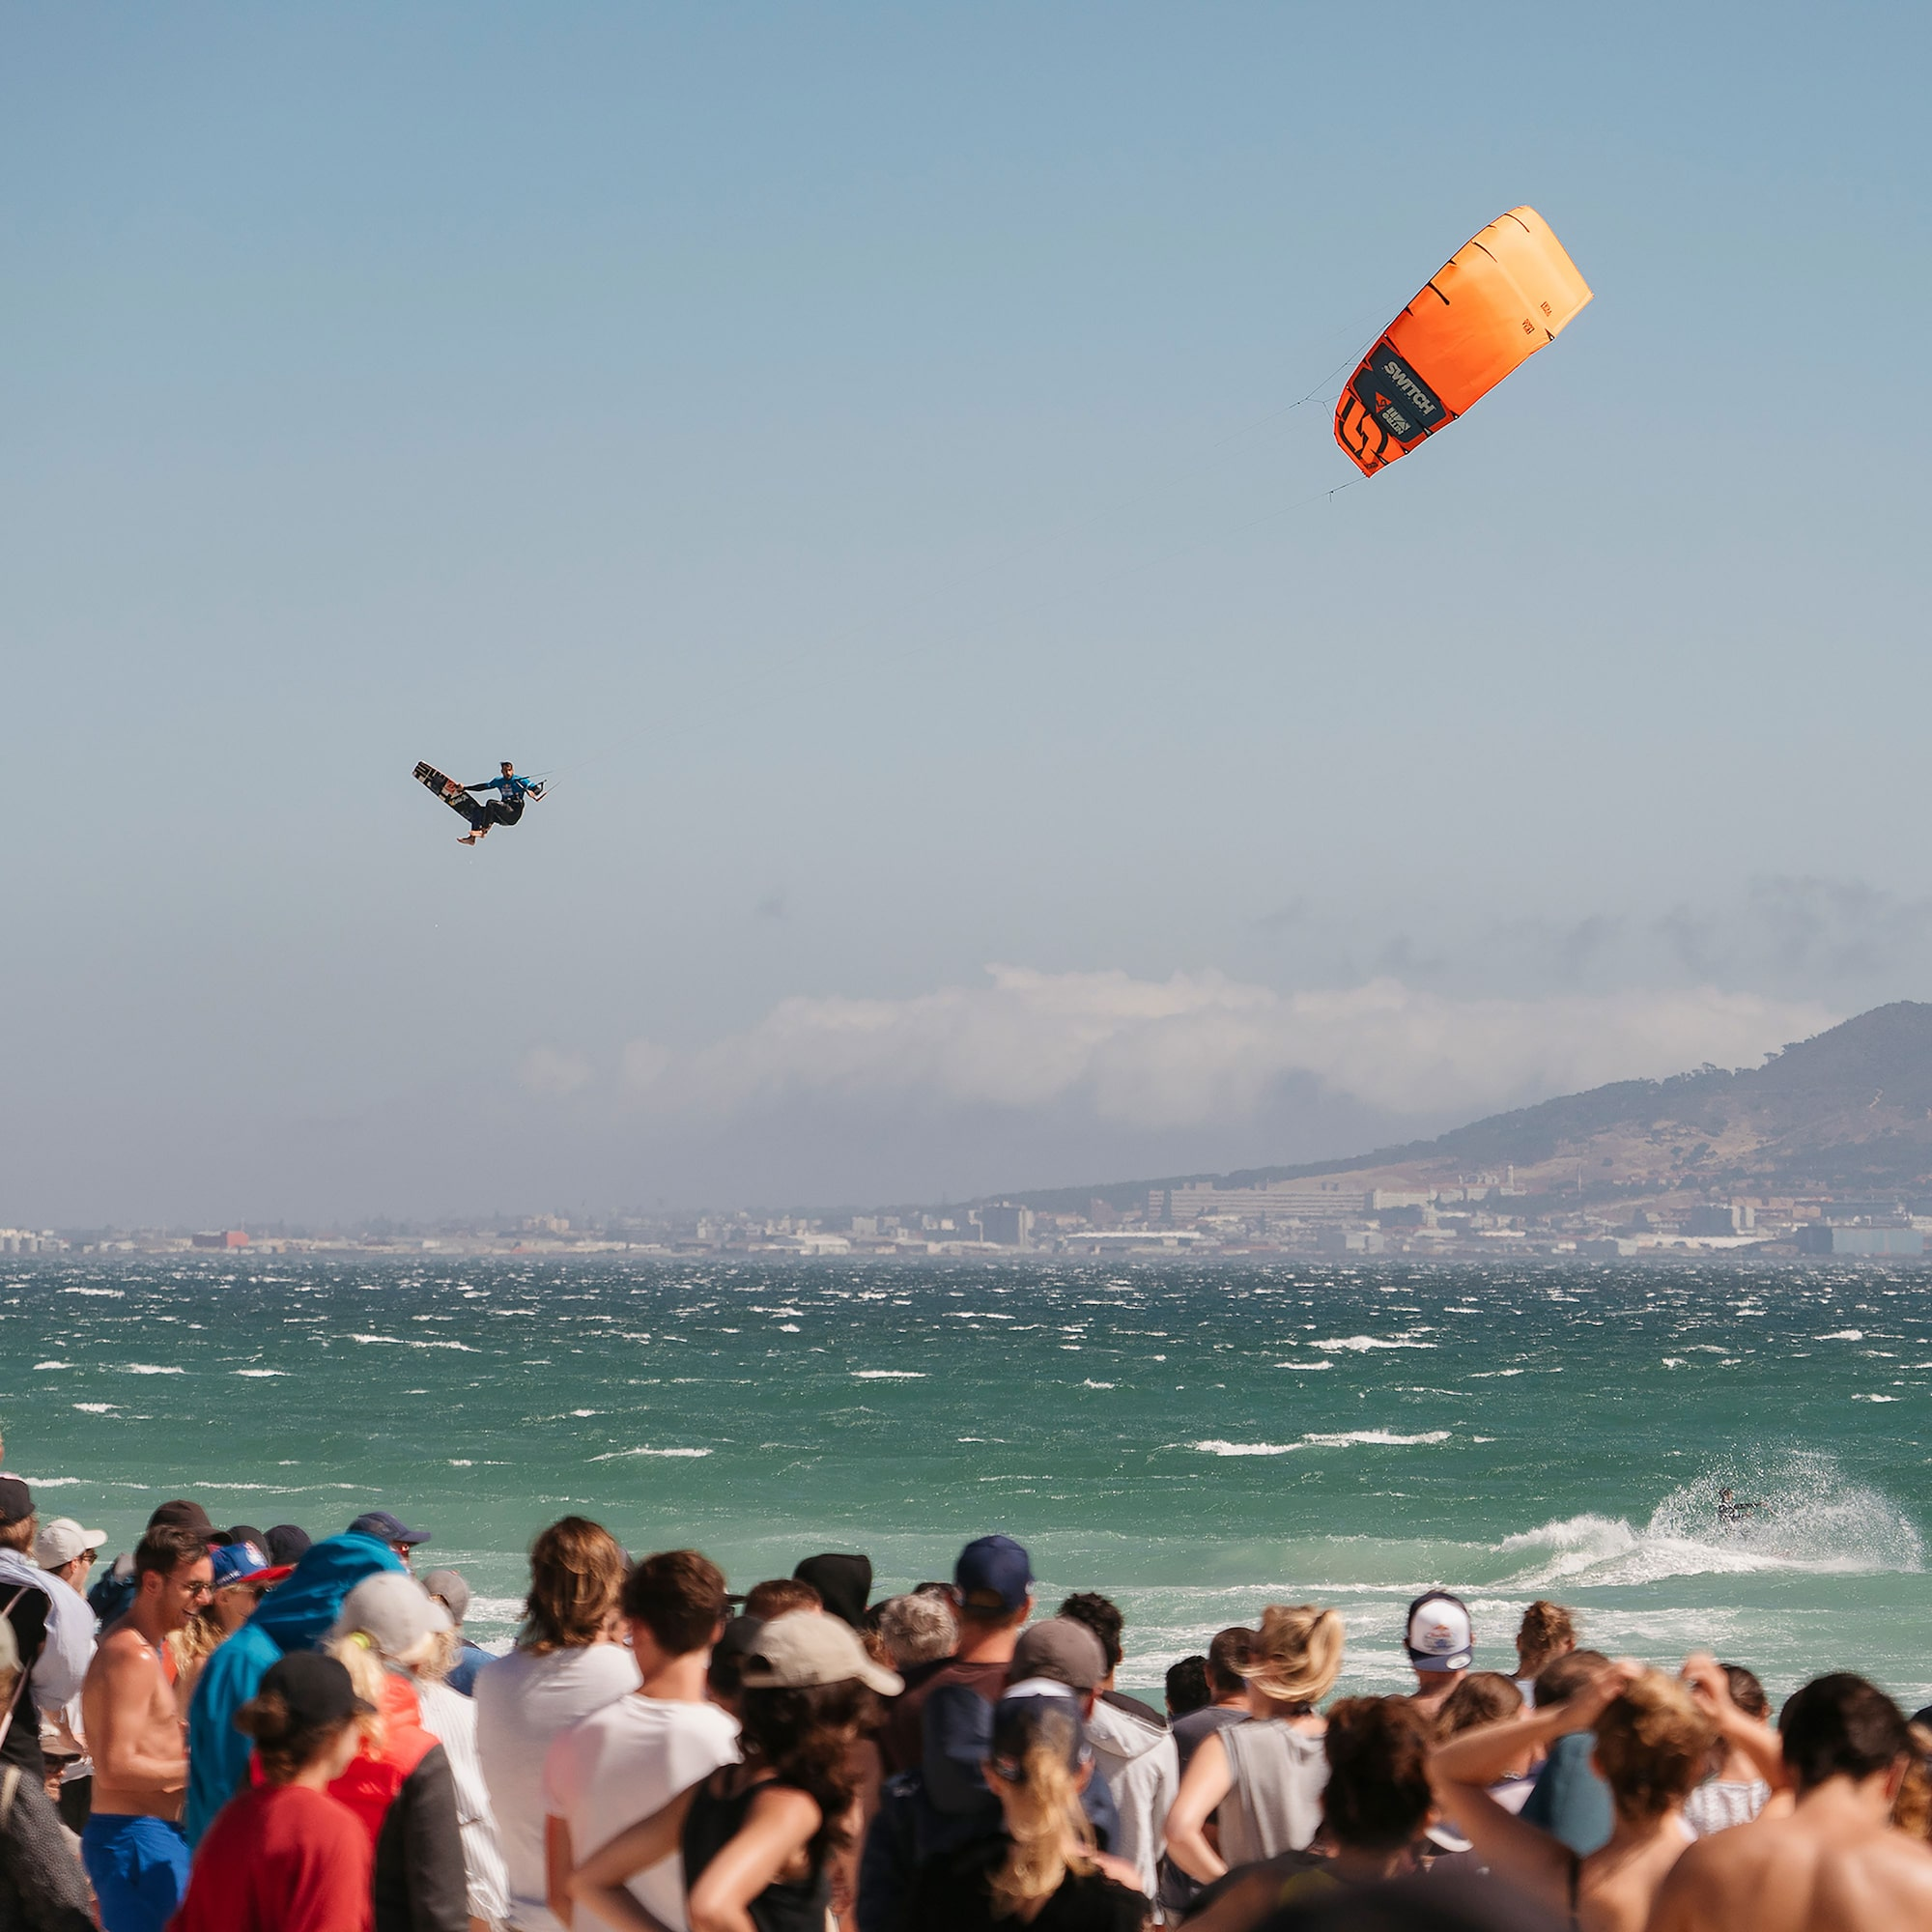 danas macijauskas sony alpha 7III kite surfer high above the ocean as a crowd watch in the foreground